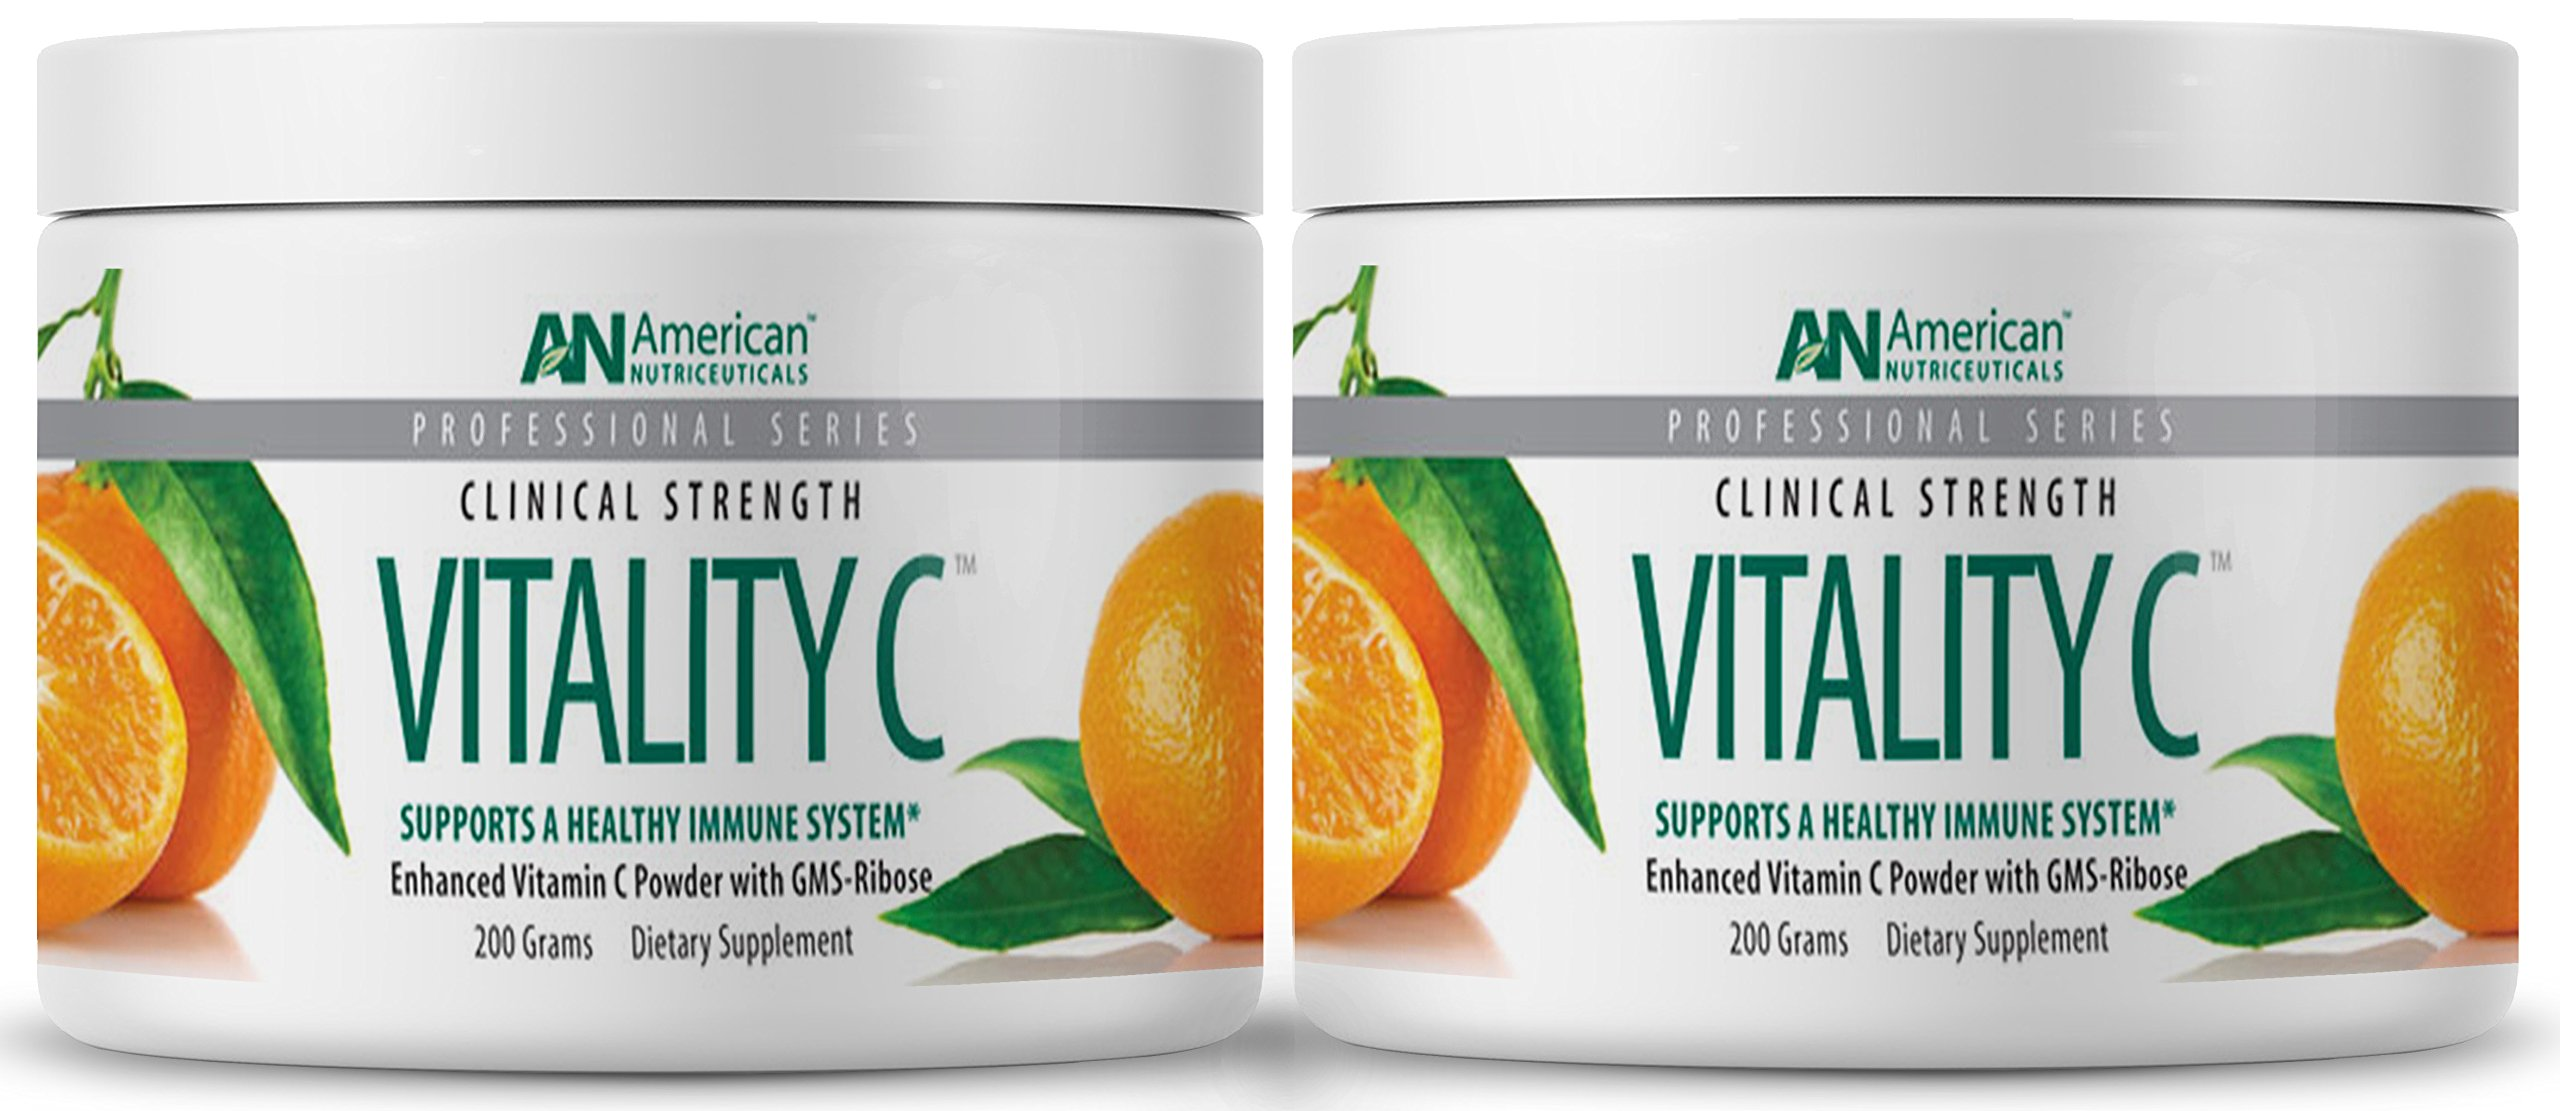 American Nutriceuticals Vitality C - 200 Gram (Pack of 2) | Ultra High-Potency Vitamin C Powder Without Gastric Distress | Enhanced Absorption, Neutral pH with GMS-Ribose Complex